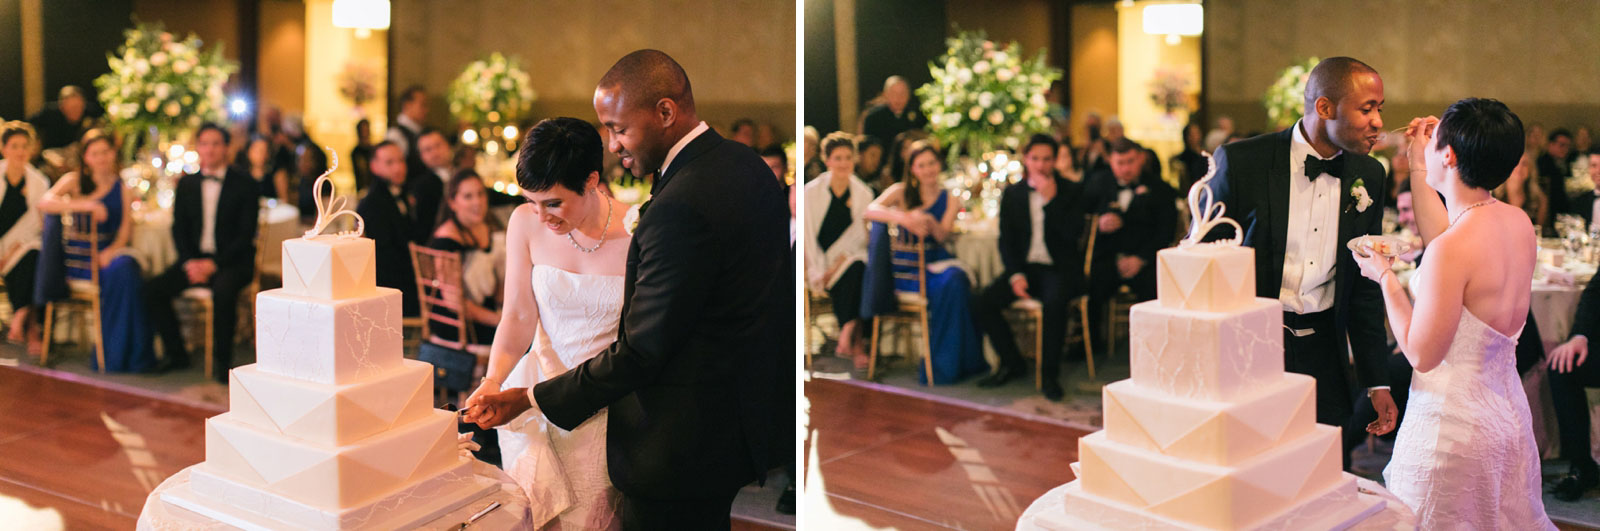 Bride and groom cut cake in modern ballroom at Ritz-Carlton during romantic winter wedding in Boston